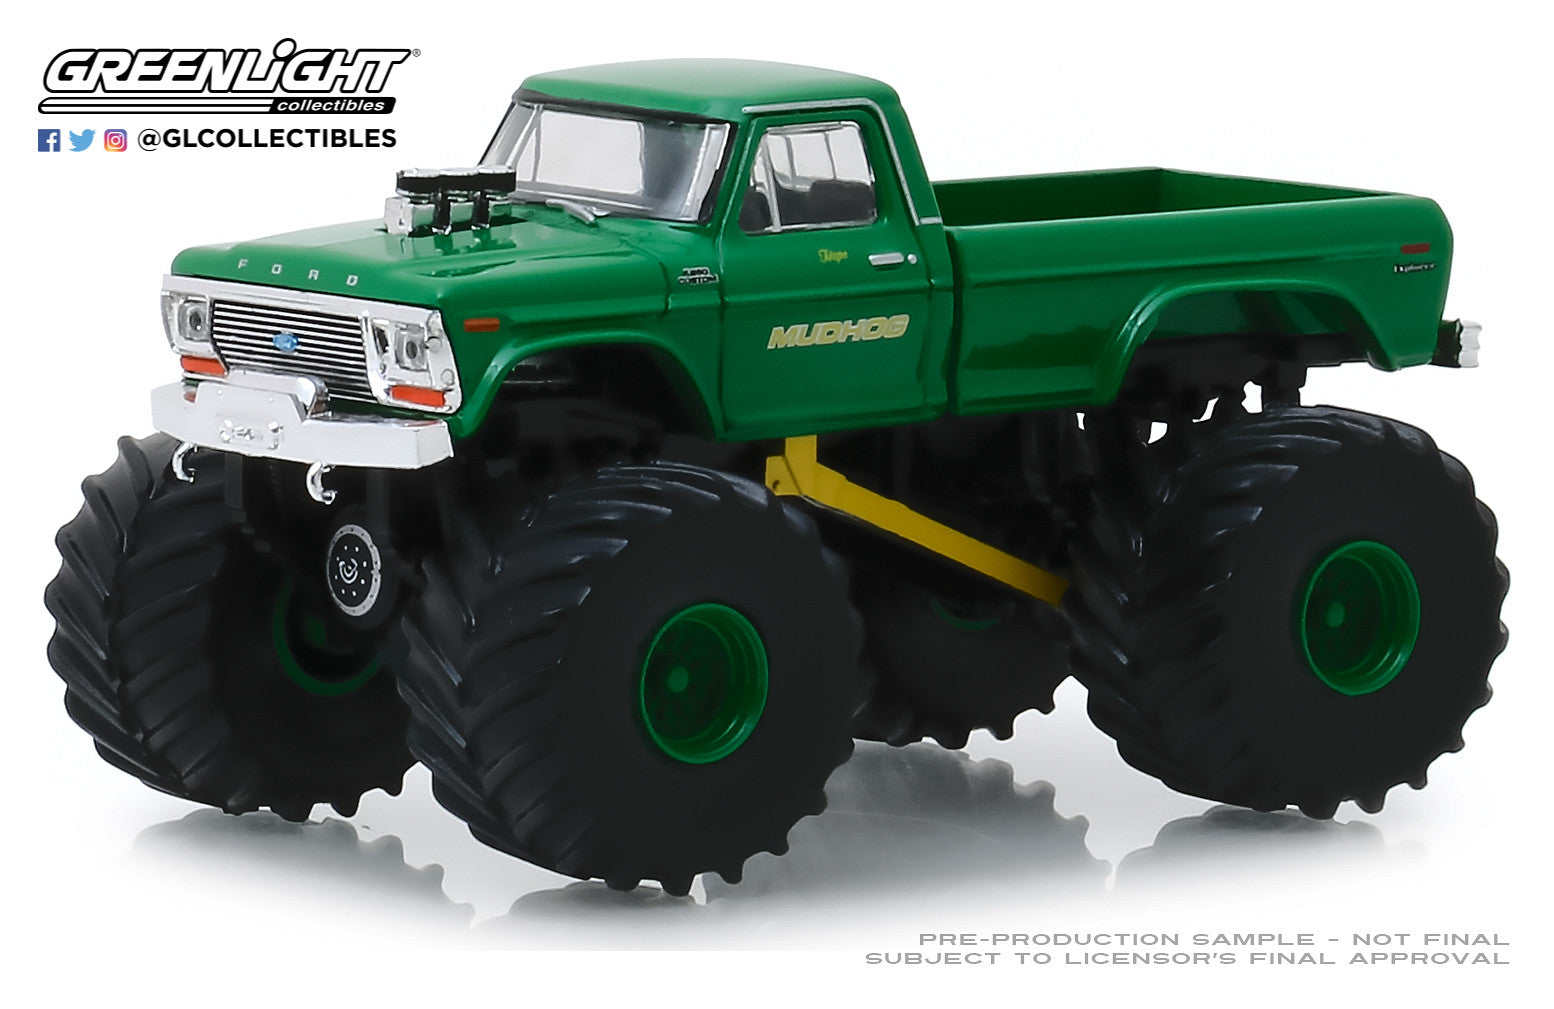 GreenLight 1:64 Kings of Crunch Series 5 - Mudhog - 1979 Ford F-250 Monster Truck 49050-C